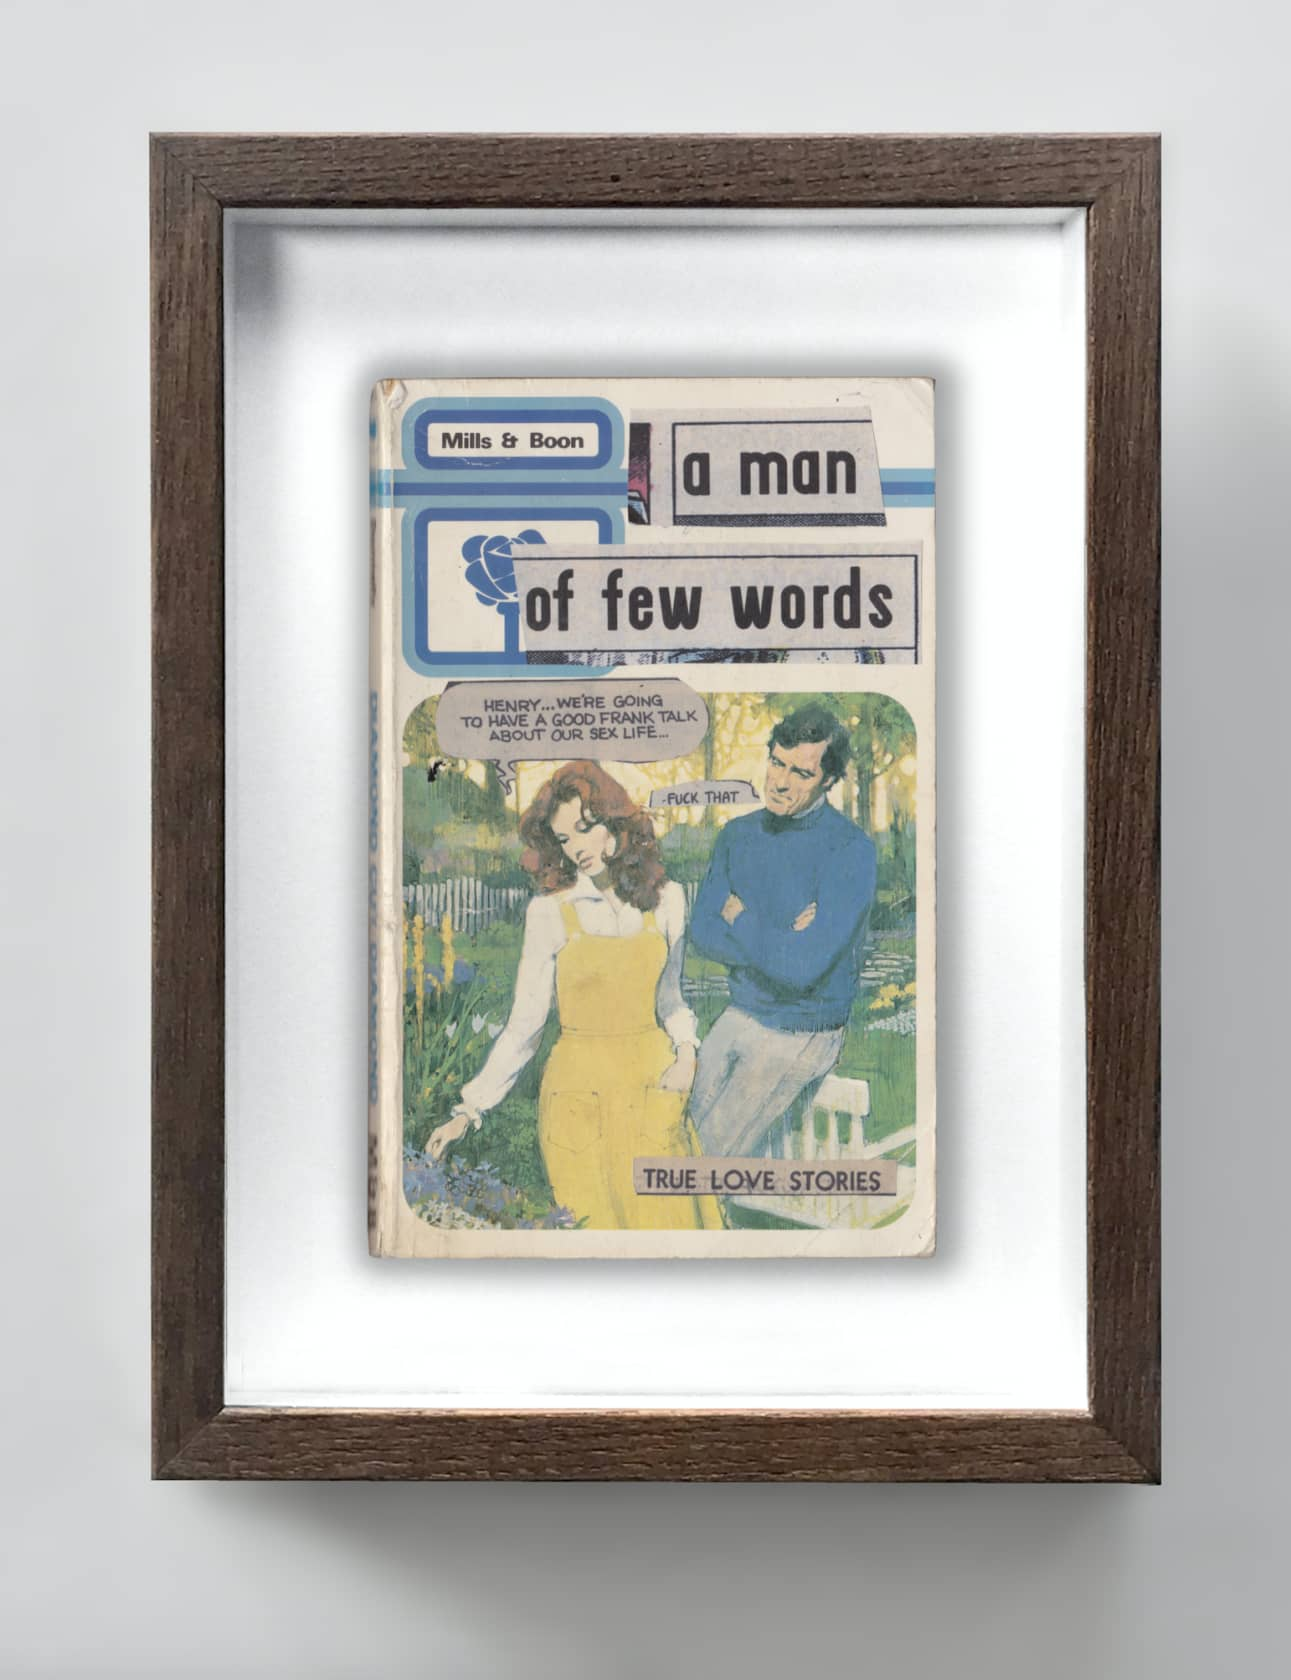 the connor brothers A Man Of Few Words Collage on vintage paperback book